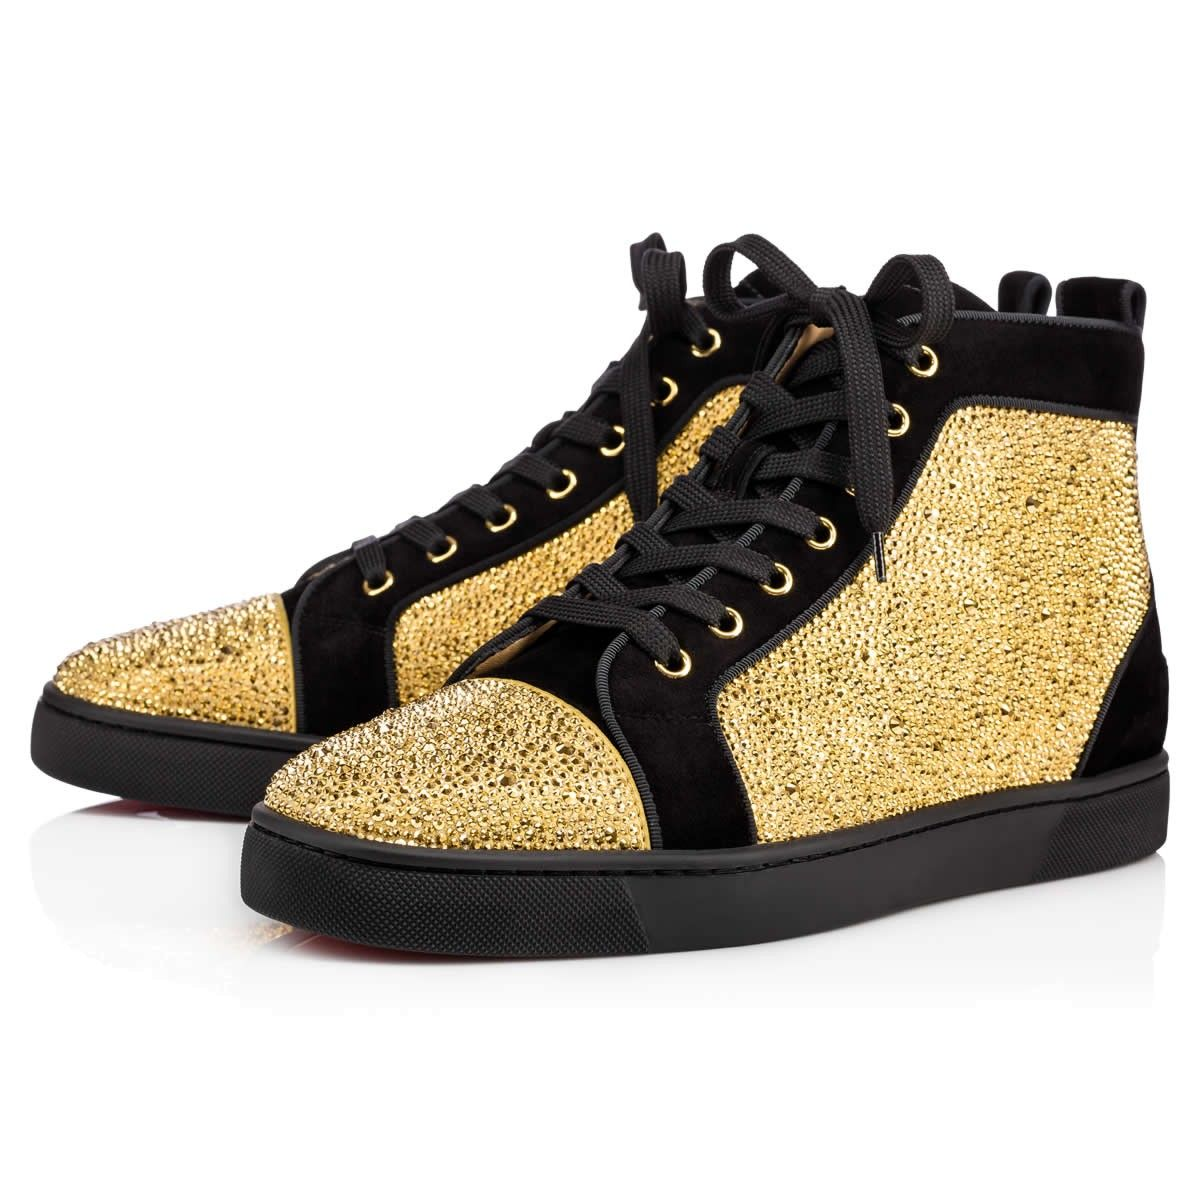 Christian Louboutin Louis Strass Flat Suede Black Gold Christian